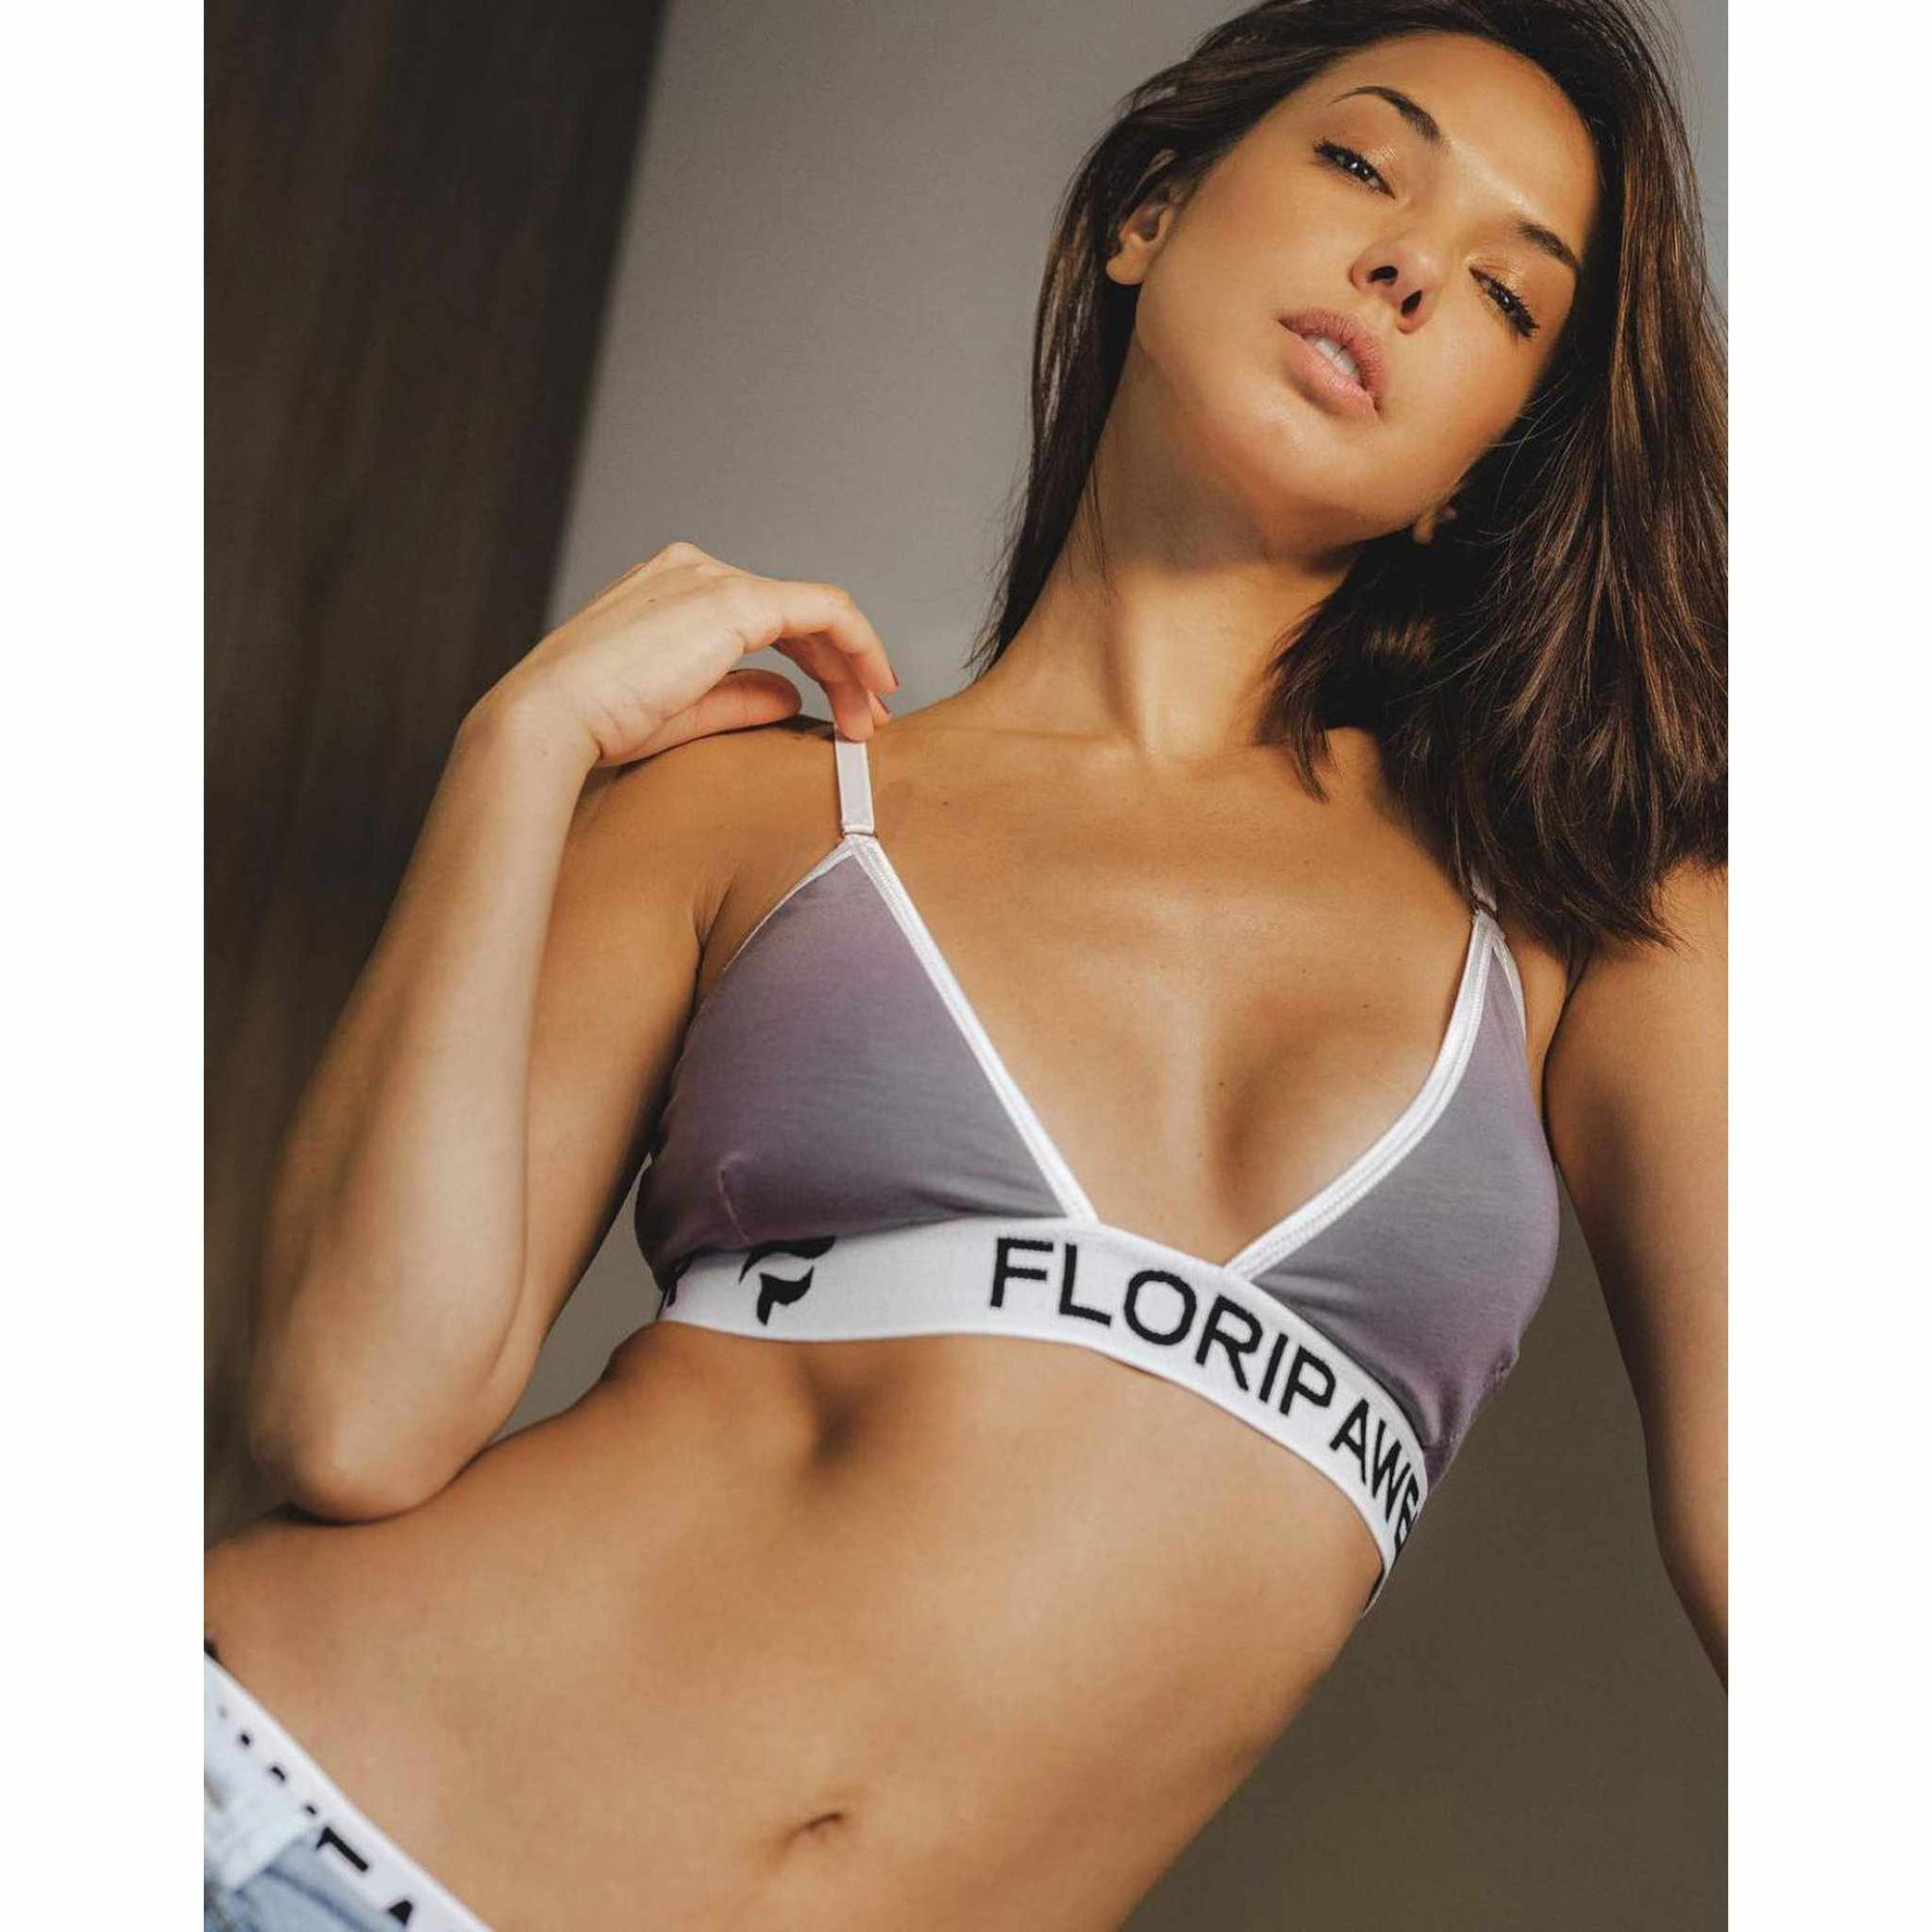 Luxury Lingerie Sports Underwear Bra & Briefs Set || Salvador Sunset - floripawear